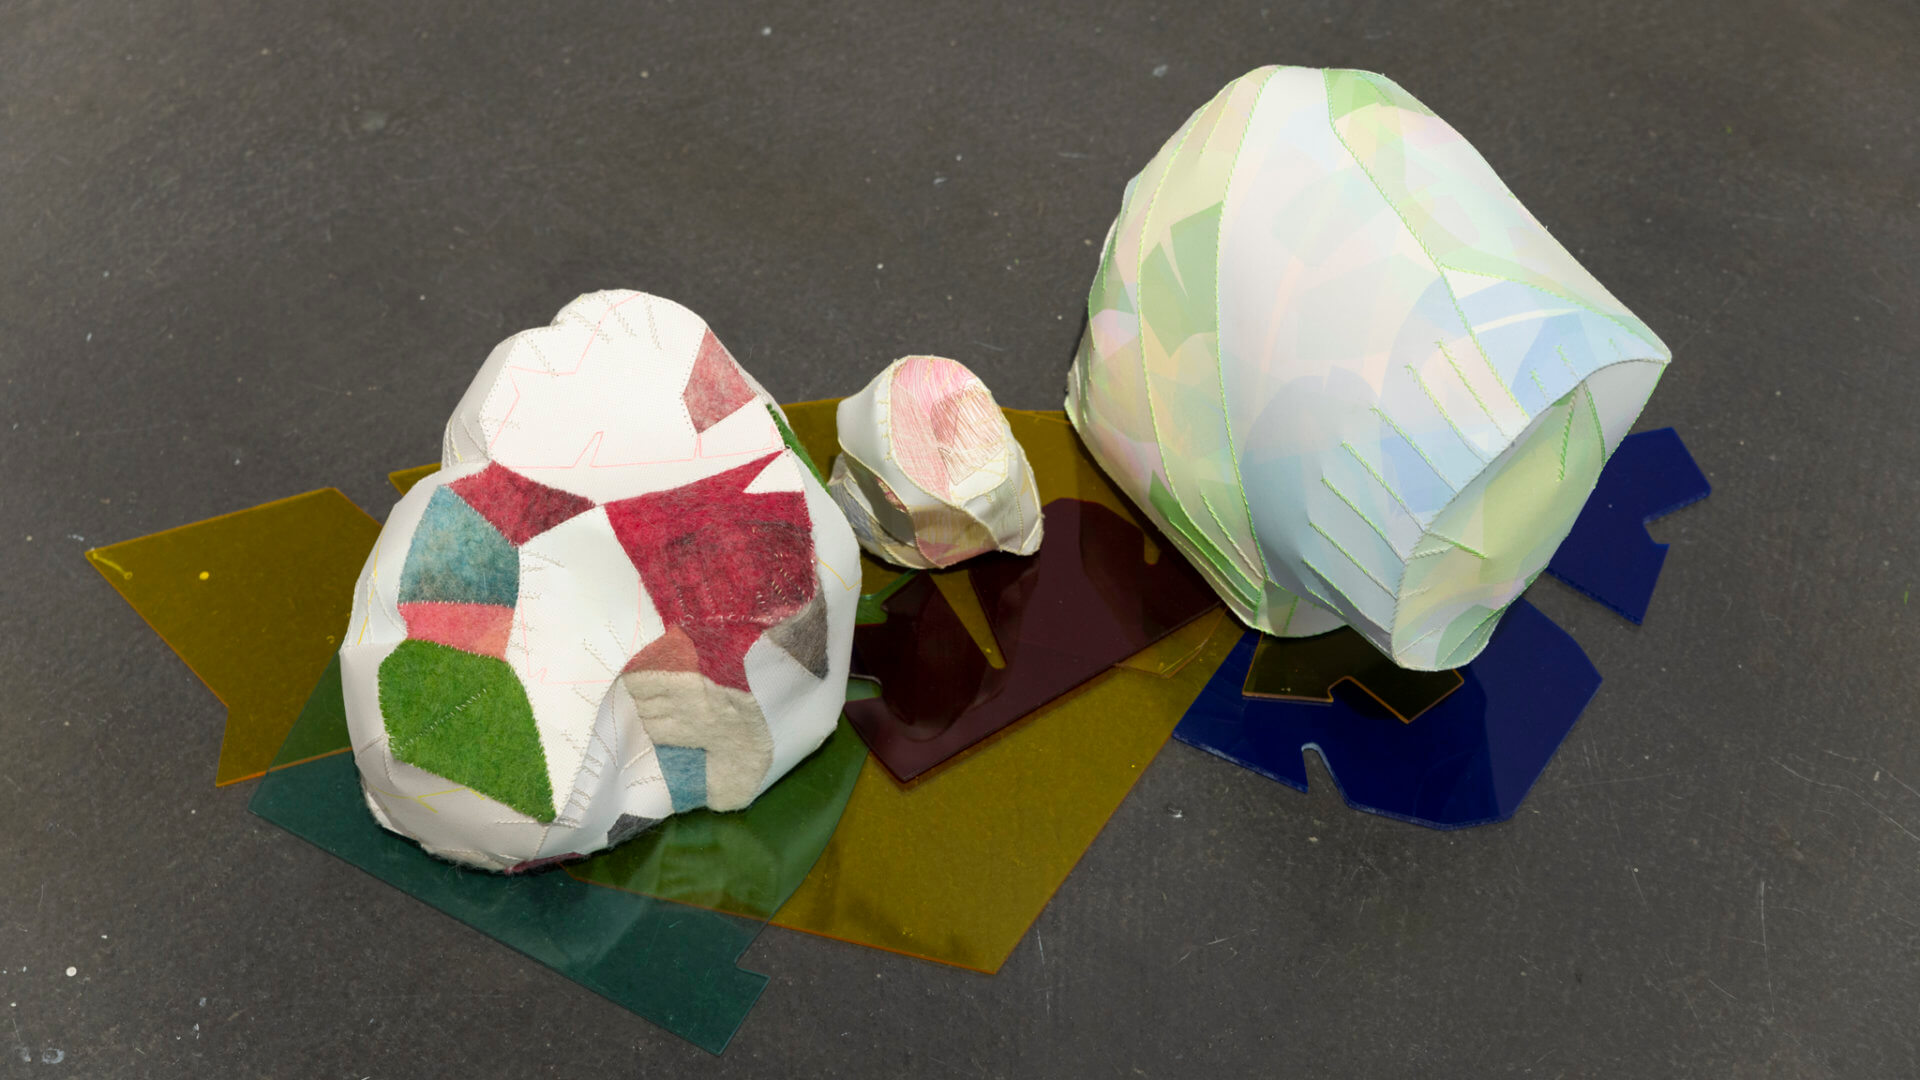 Installation view of Playground Chitchat. Detail of work by Neah Kelly. Image credit: Sarah Fuller.